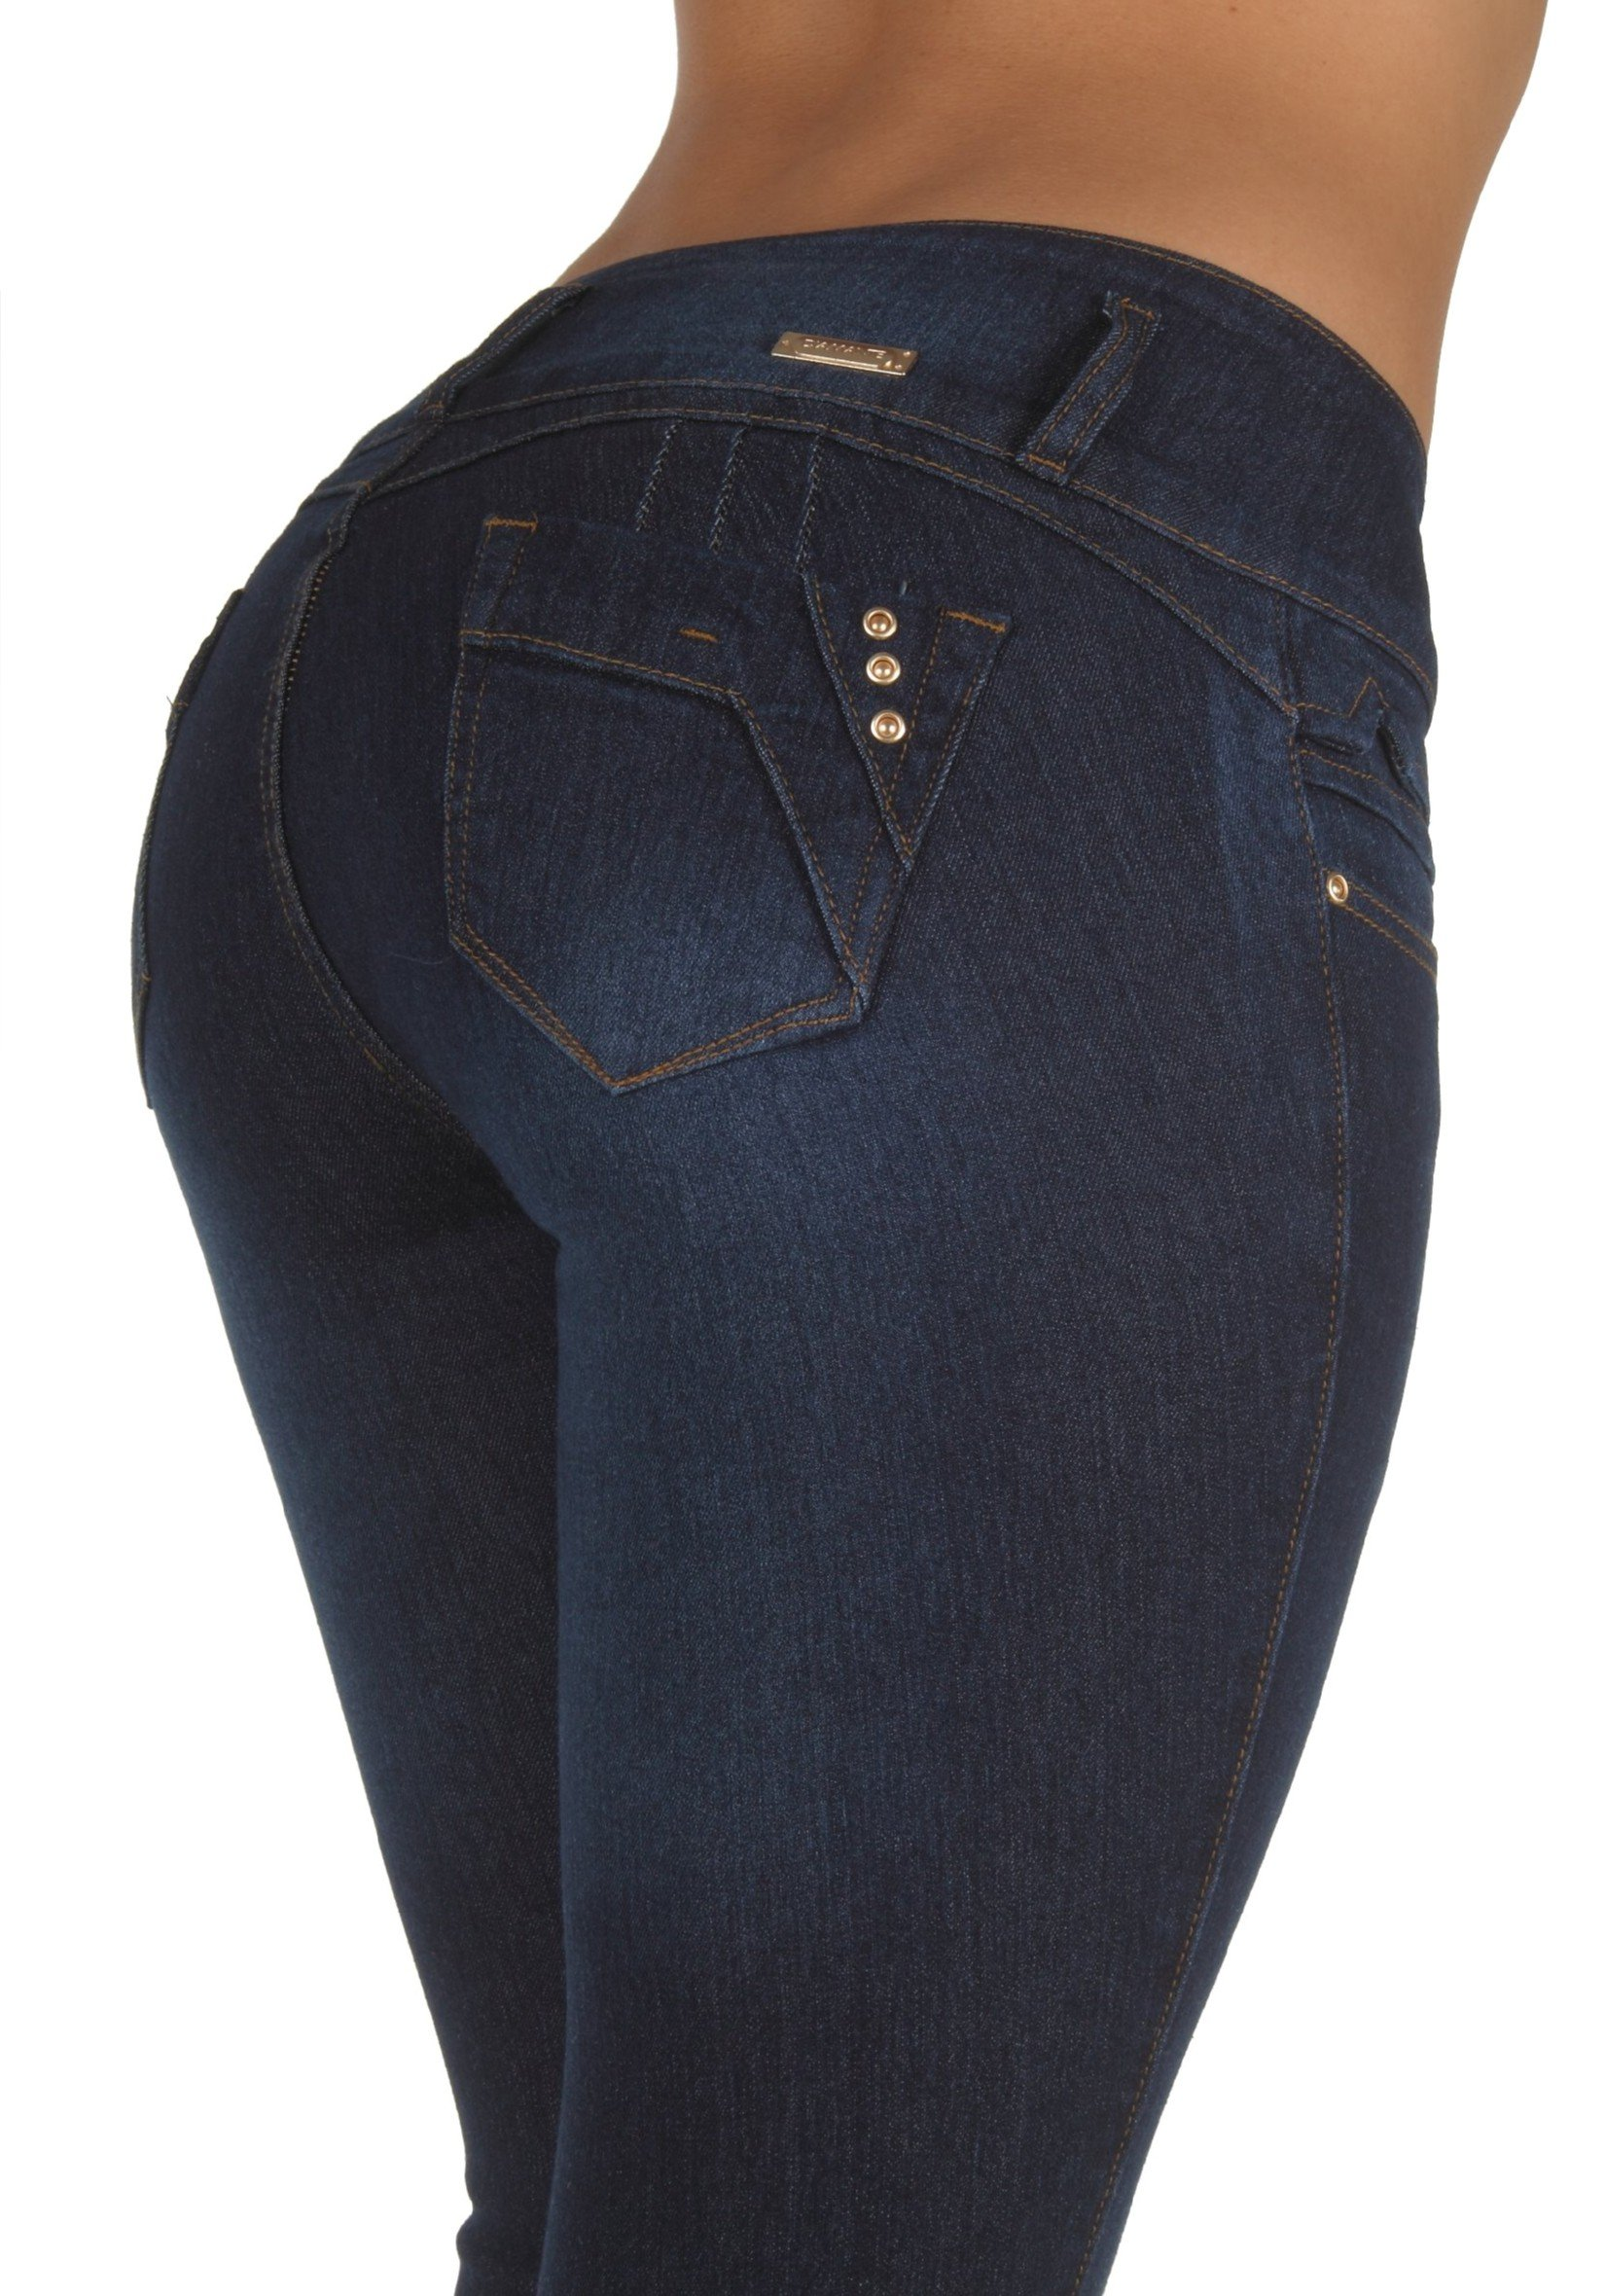 Style N491SK– Colombian Design, Butt Lift, Levanta Cola, Stretch Skinny Jeans in Dark Blue Size 9